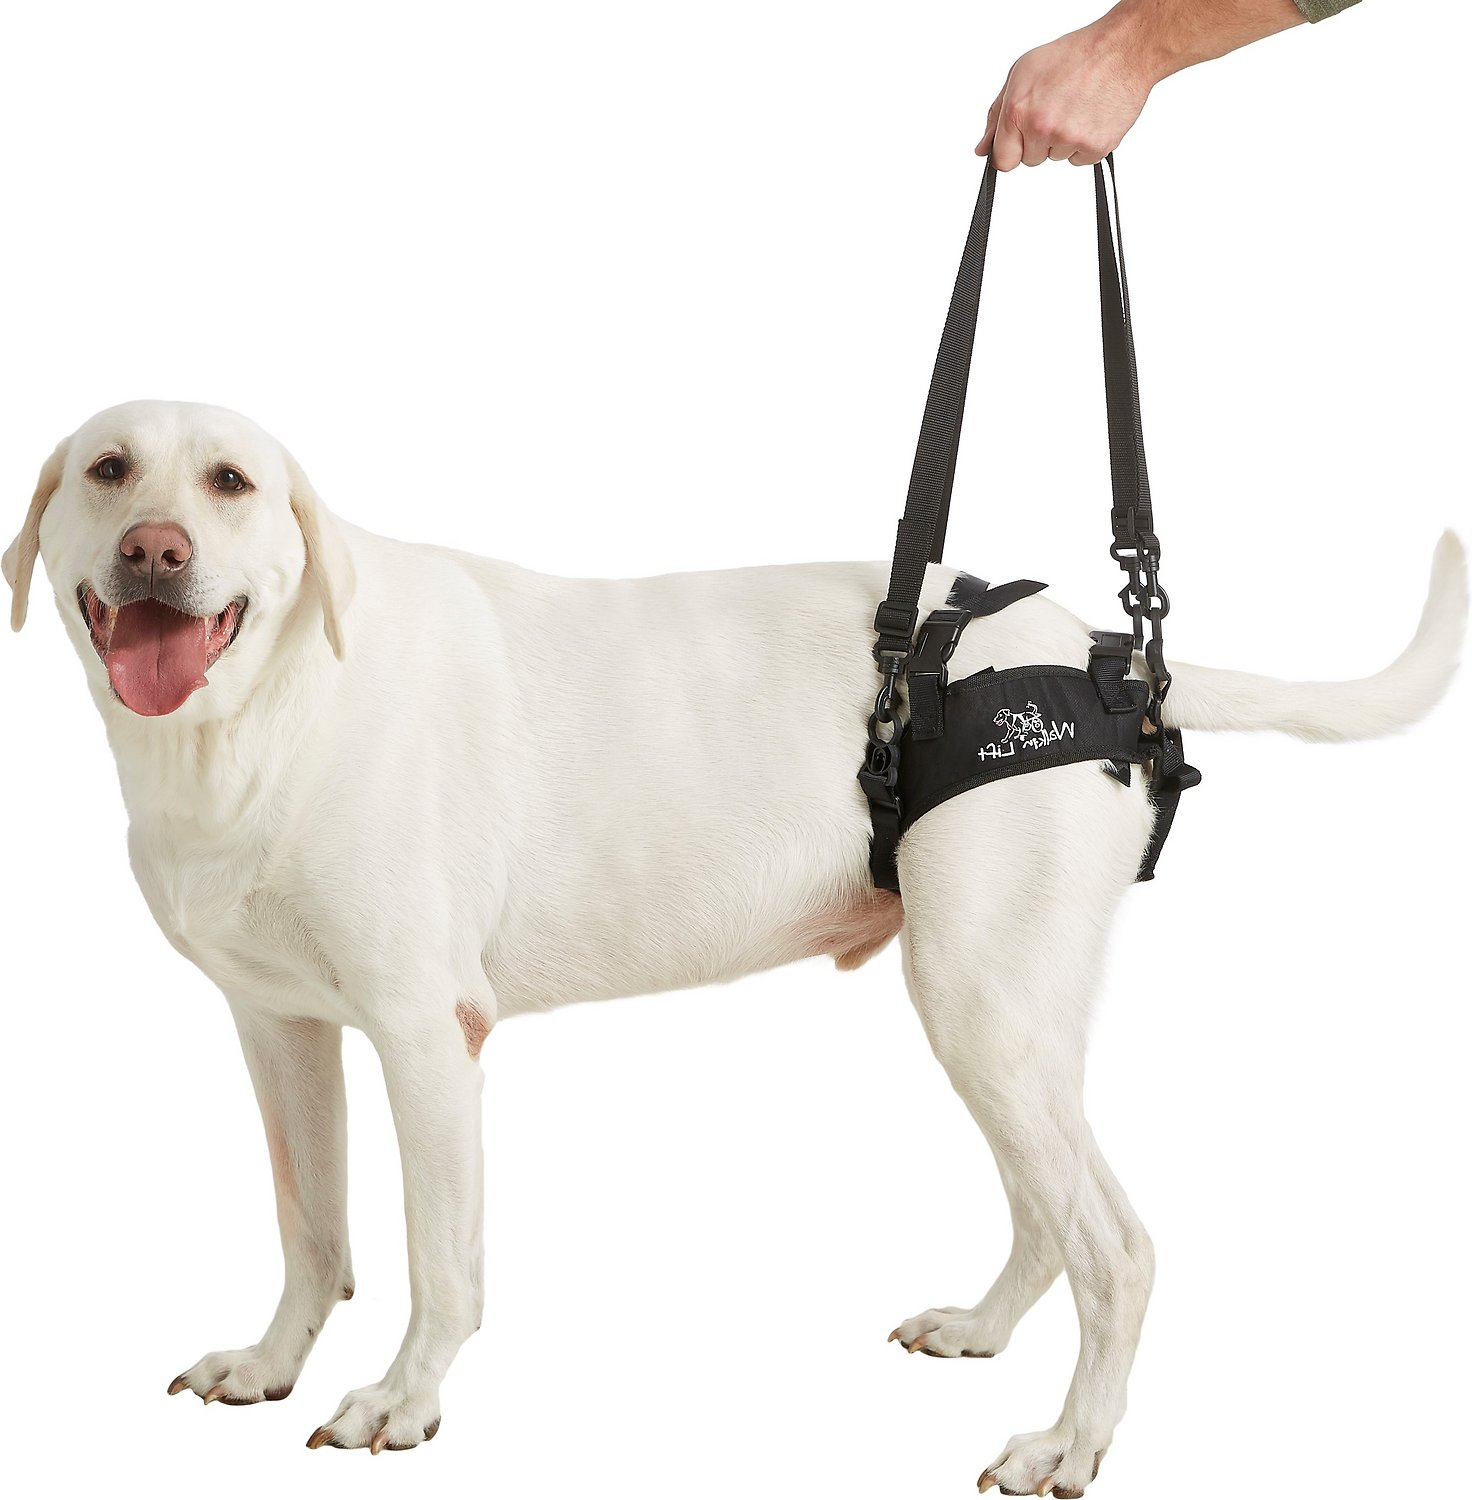 Handicappedpets Rear Lift Dog Harness Large Chewy Com